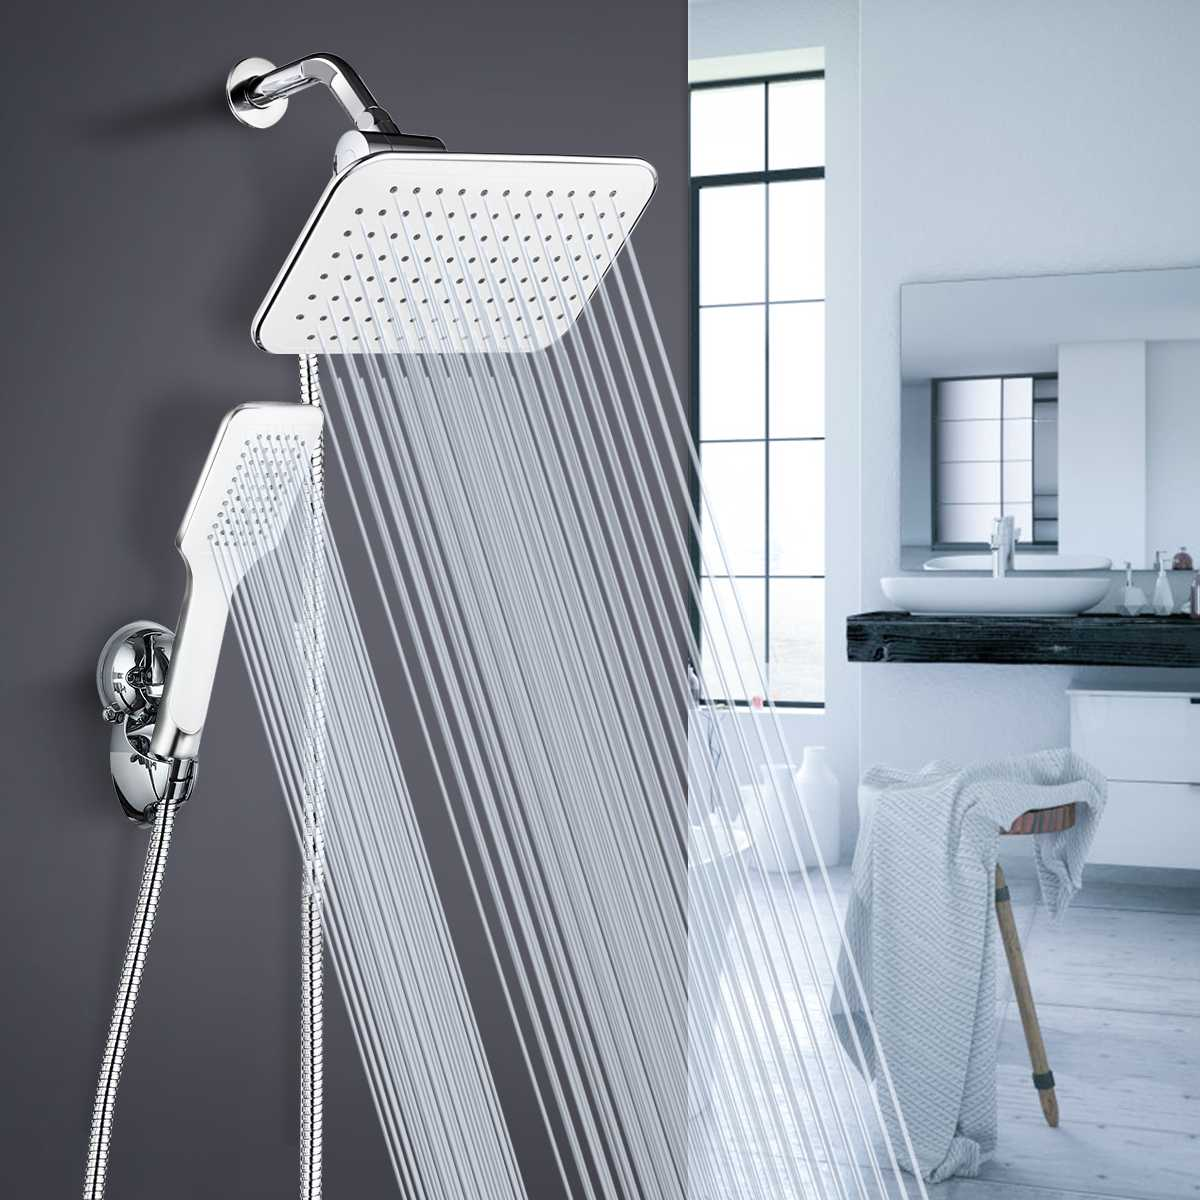 Shower Head Combo, Adjustable Rainfall Showerhead & Handheld Shower Head Combo With Strong Suction Cup Holder